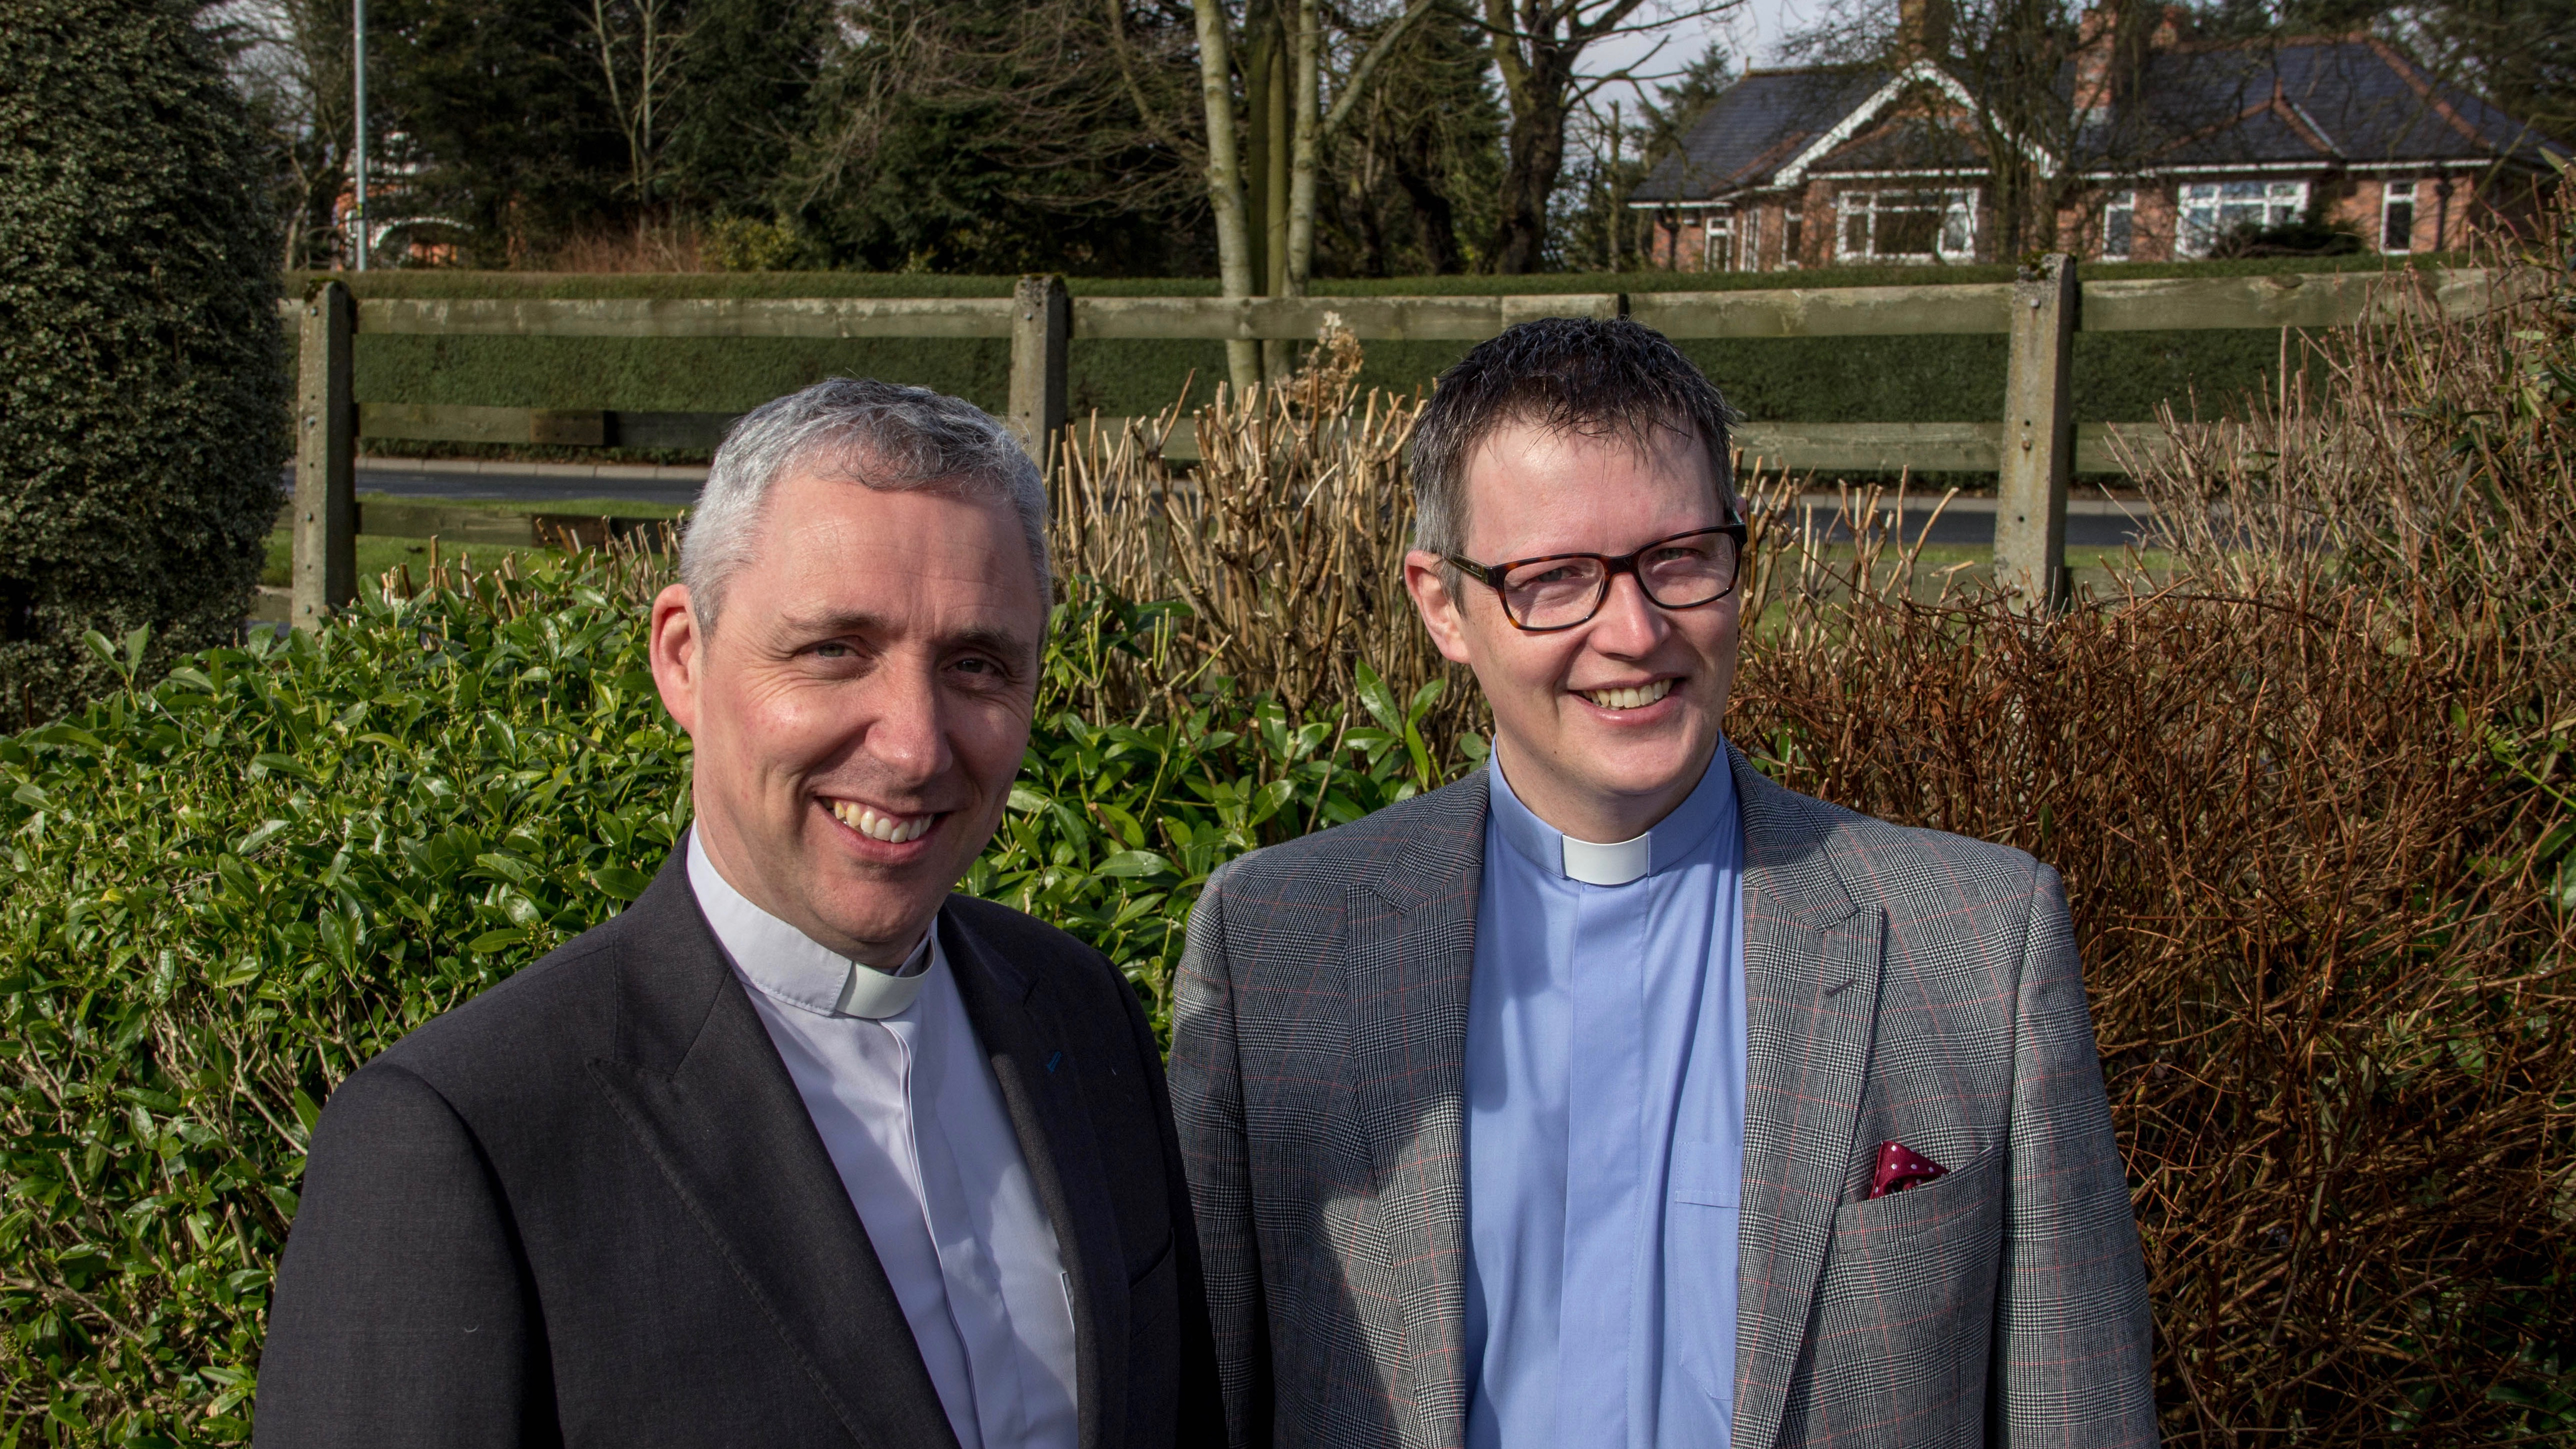 Two priests from opposite sides of Northern Ireland's sectarian divide have something to say about forgiveness